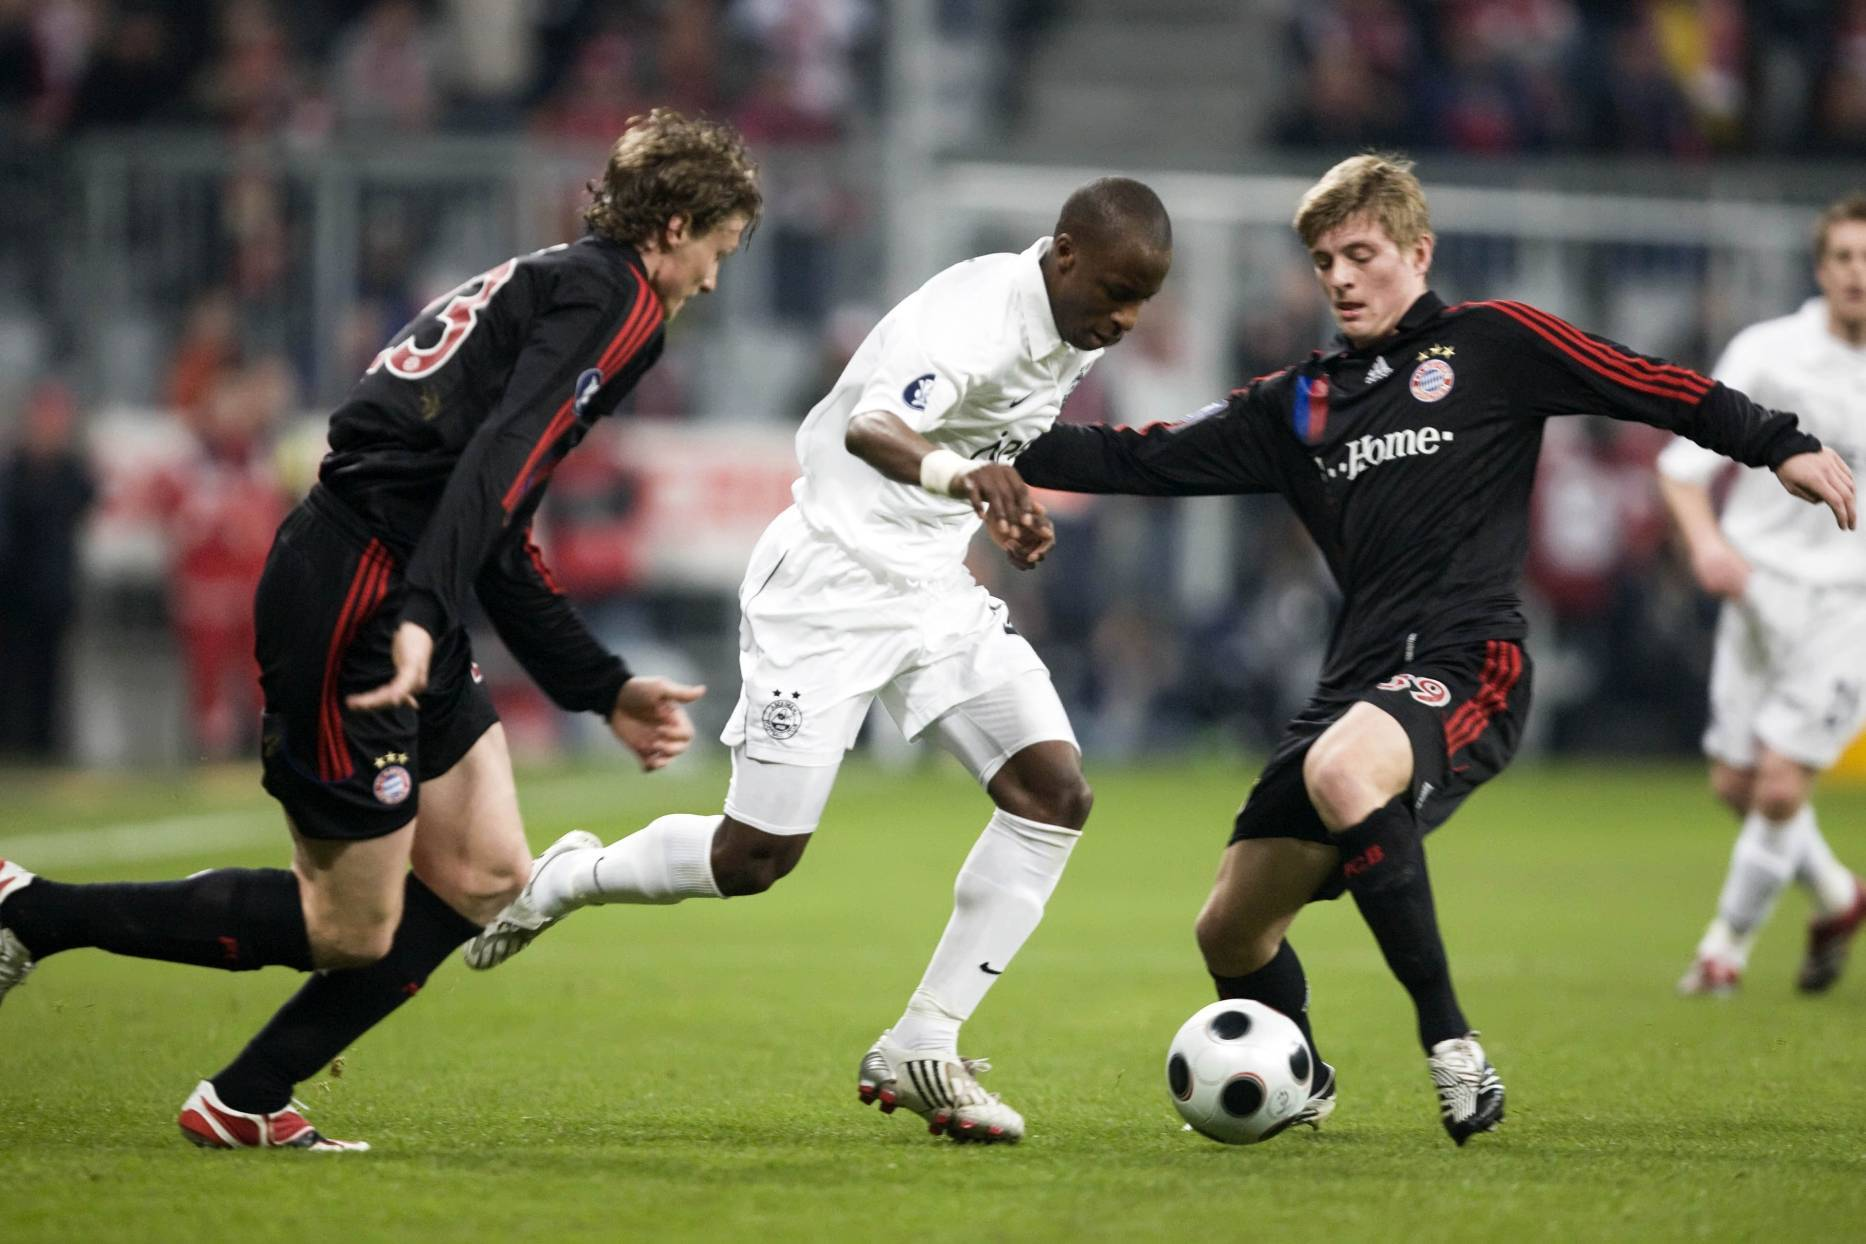 Bayern Munich duo Marcell Jansen (left) and Toni Kroos (right) close in on Sone Aluko